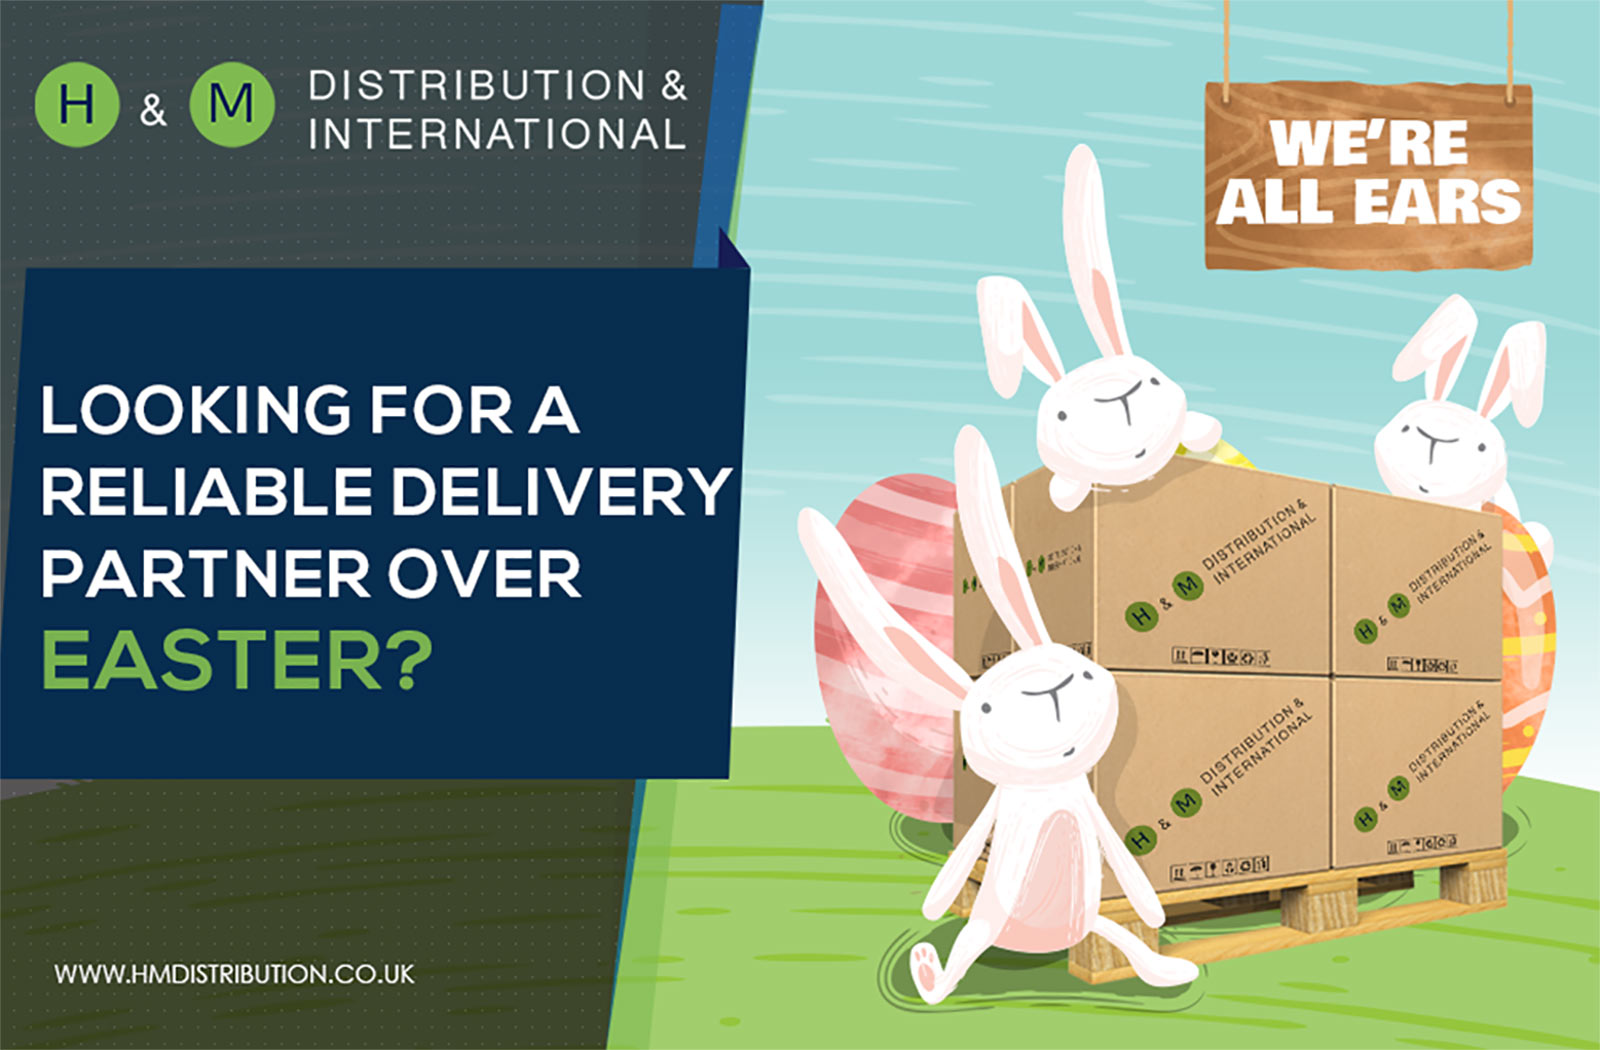 H&M Distribution- pallet delivery service based in the UK